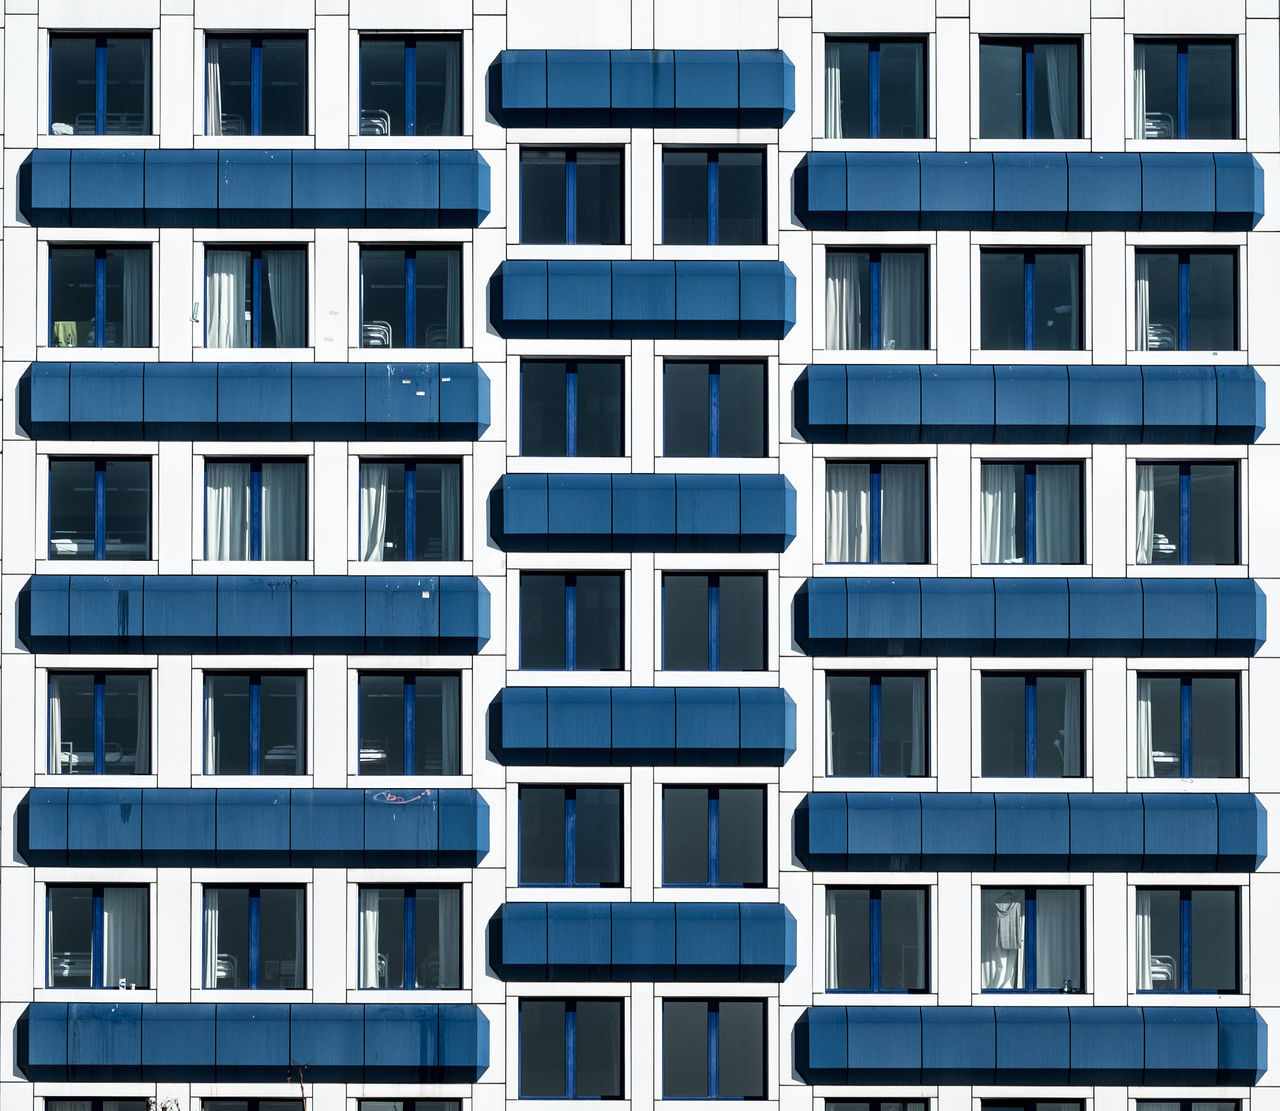 Thelastfromthisfacade Architectural Detail Architectural Feature Architecture Architecture_collection Architecturelovers Backgrounds Berlin Photography Building Exterior Built Structure City Façade Full Frame In A Row Minimalism Minimalist Minimalist Architecture No People Urban Geometry Urbanphotography The Architect - 2017 EyeEm Awards